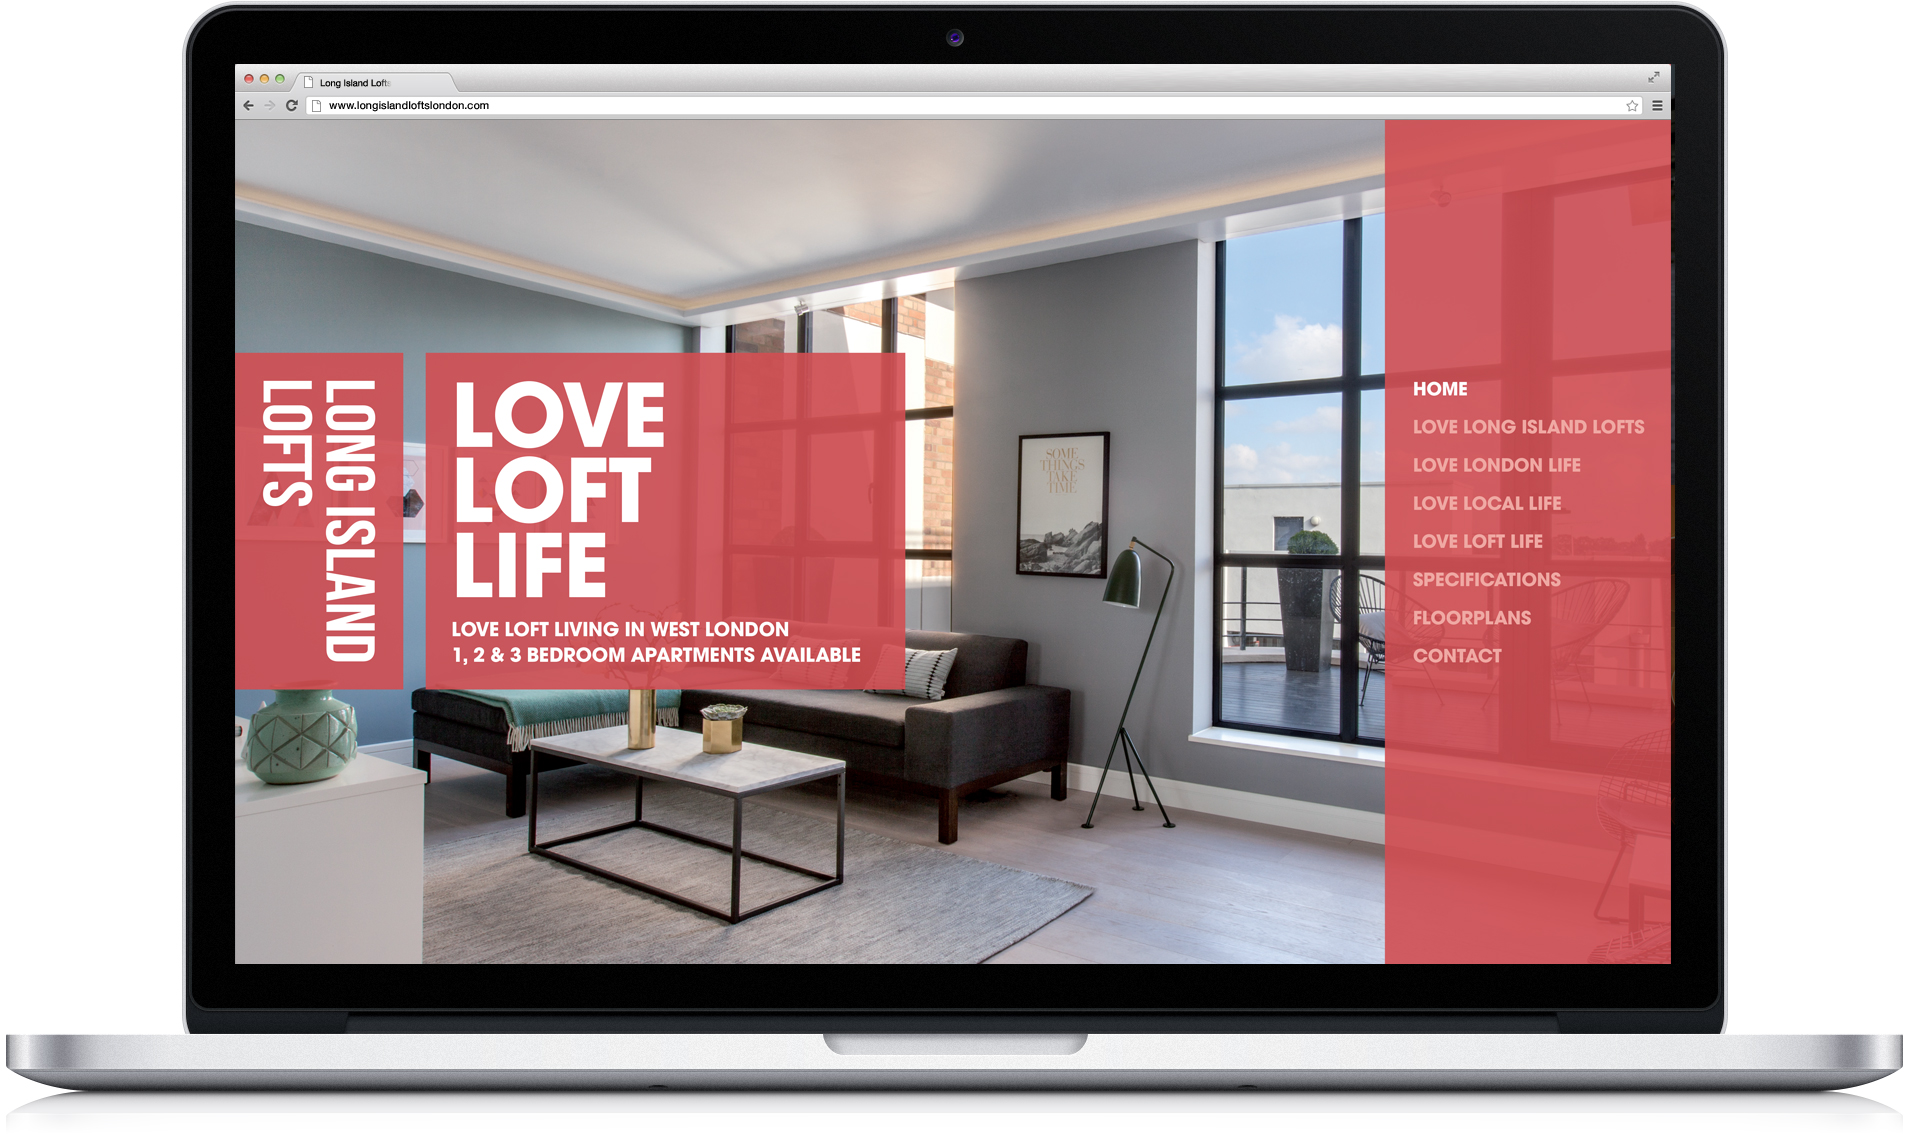 Luxury London property responsive website home page design and development on laptop